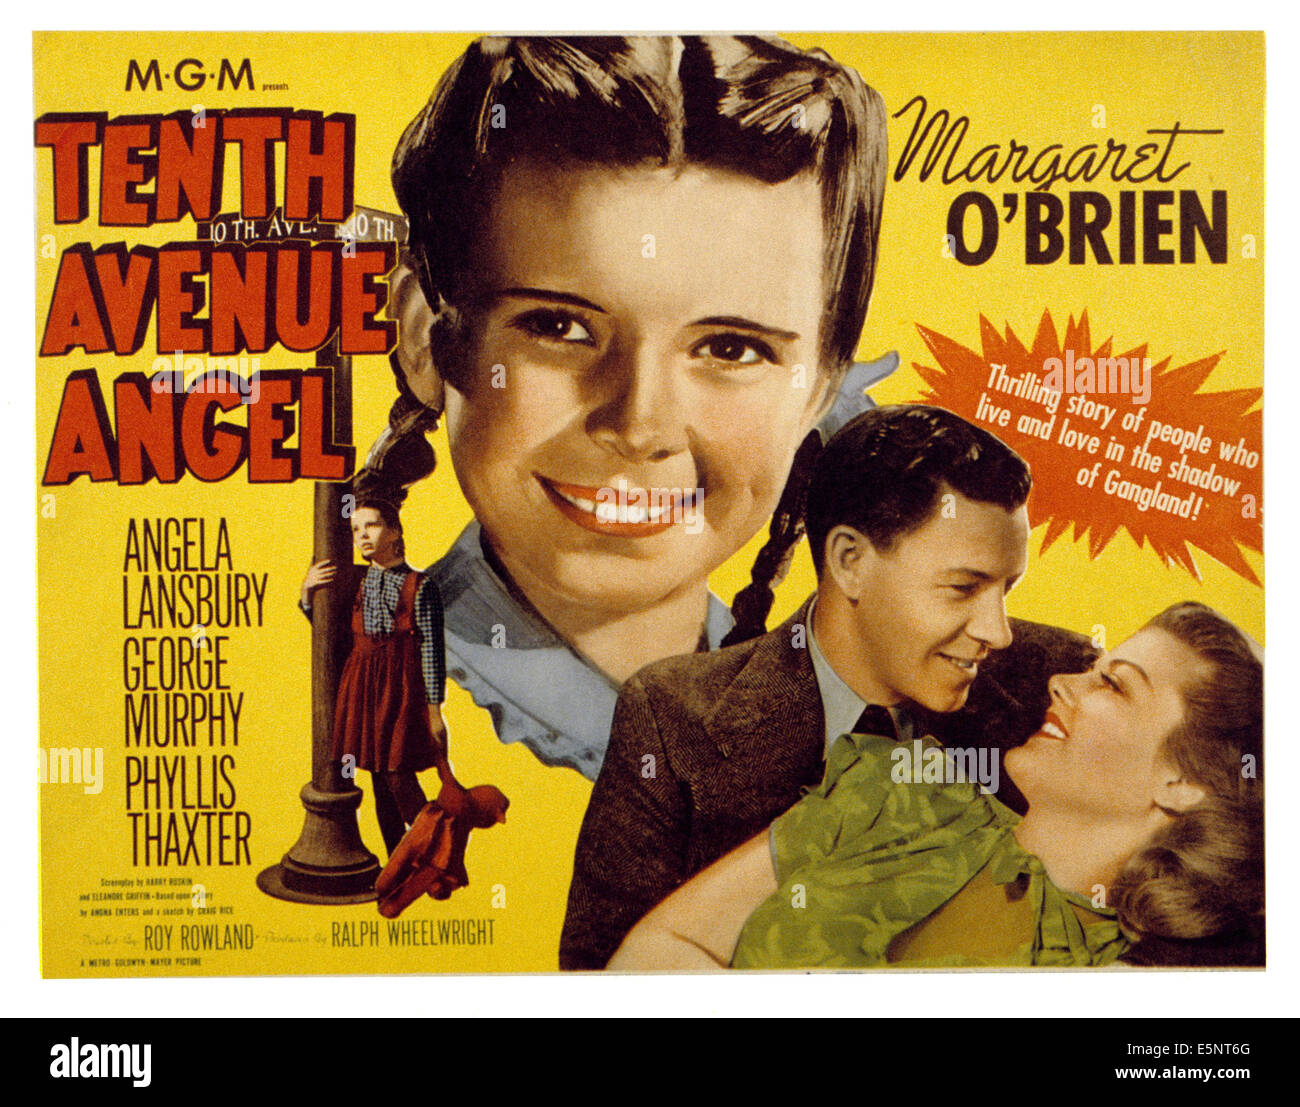 TENTH AVENUE ANGEL, Margaret O'Brien, George Murphy, Angela Lansbury, 1948 - Stock Image